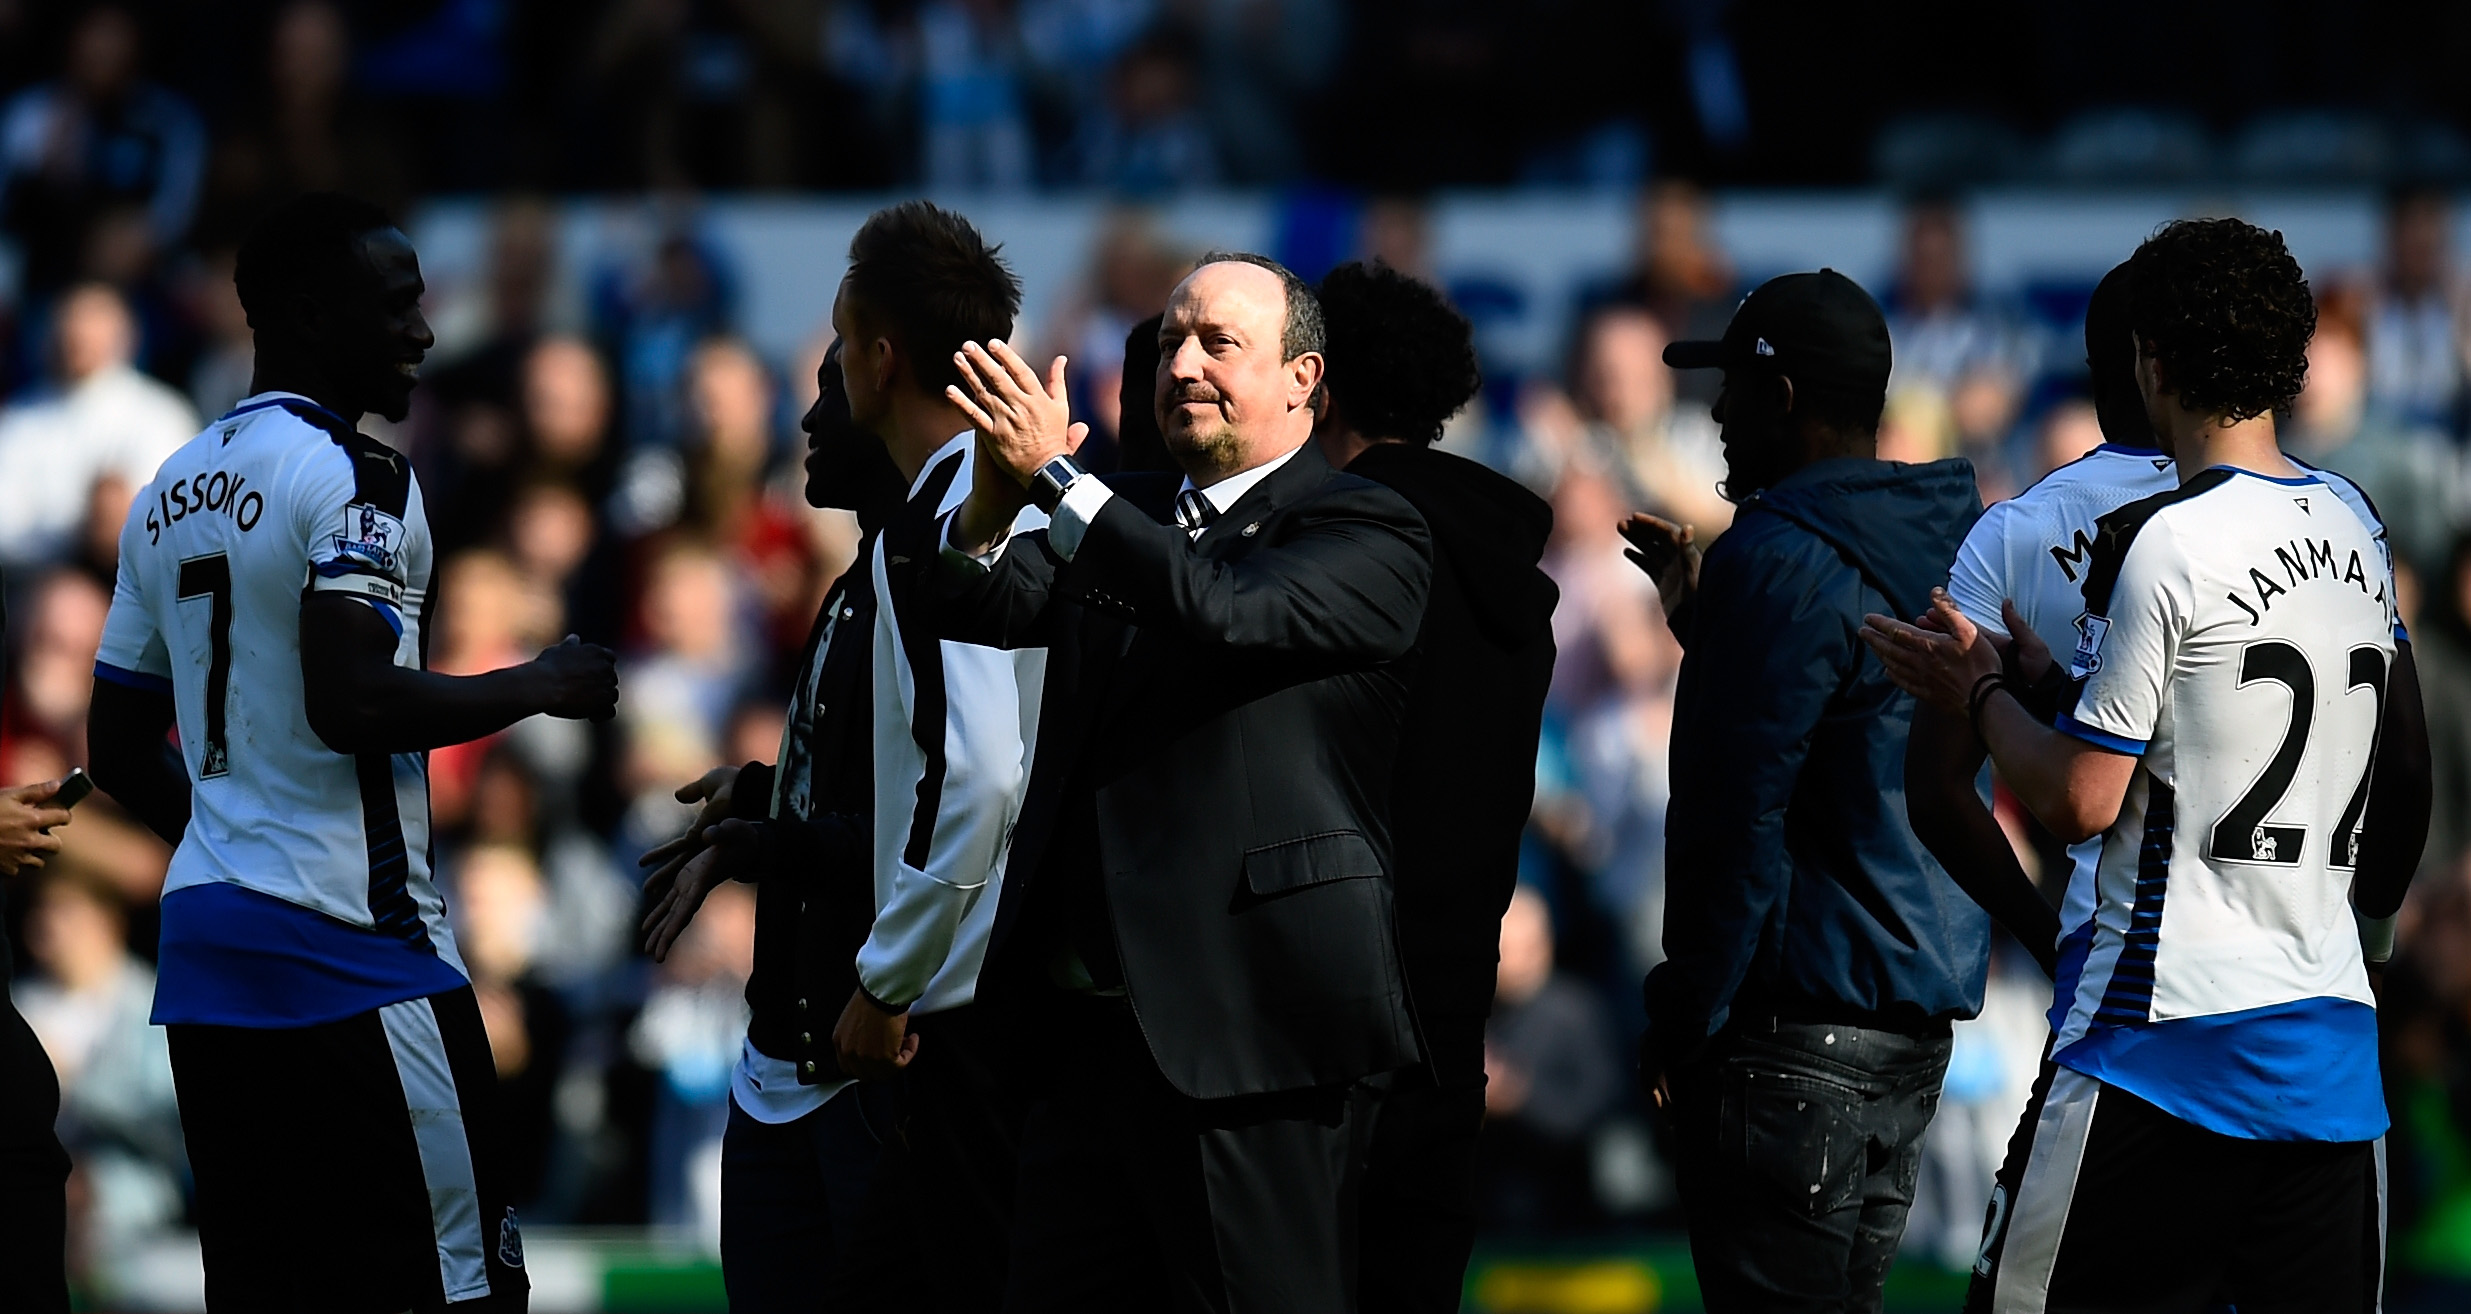 NEWCASTLE UPON TYNE, ENGLAND - MAY 15: Newcastle manager Rafa Benitez applauds the fans after the Premier League match between Newcastle United and Tottenham Hotspur at St James' Park on May 15, 2016 in Newcastle upon Tyne, England. (Photo by Stu Forster/Getty Images)